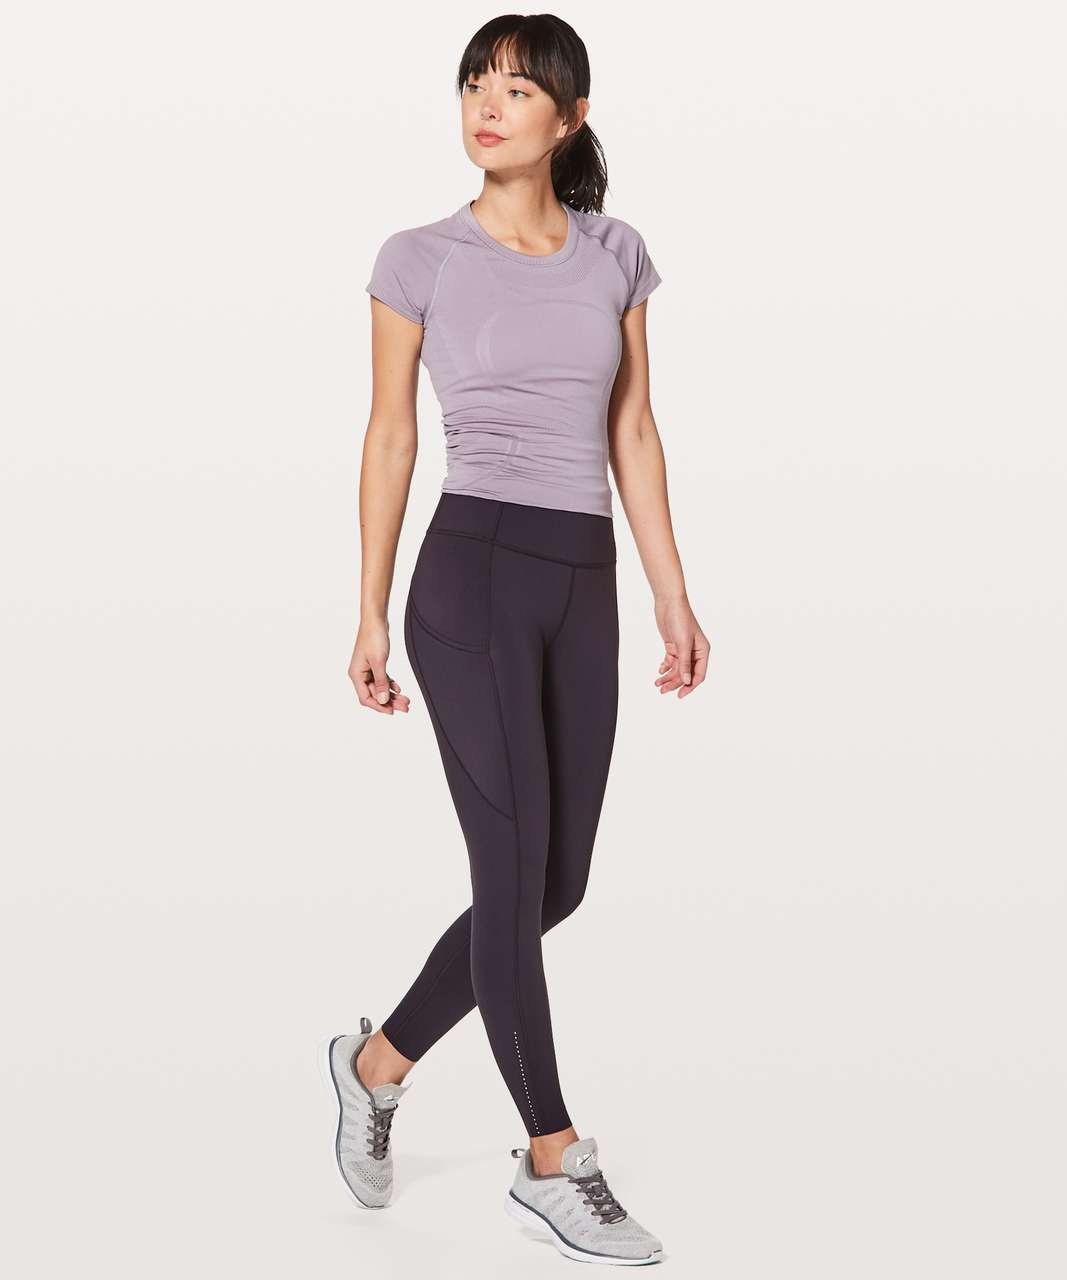 "Lululemon Fast & Free 7/8 Tight II *Nulux 25"" - Deep Phantom"